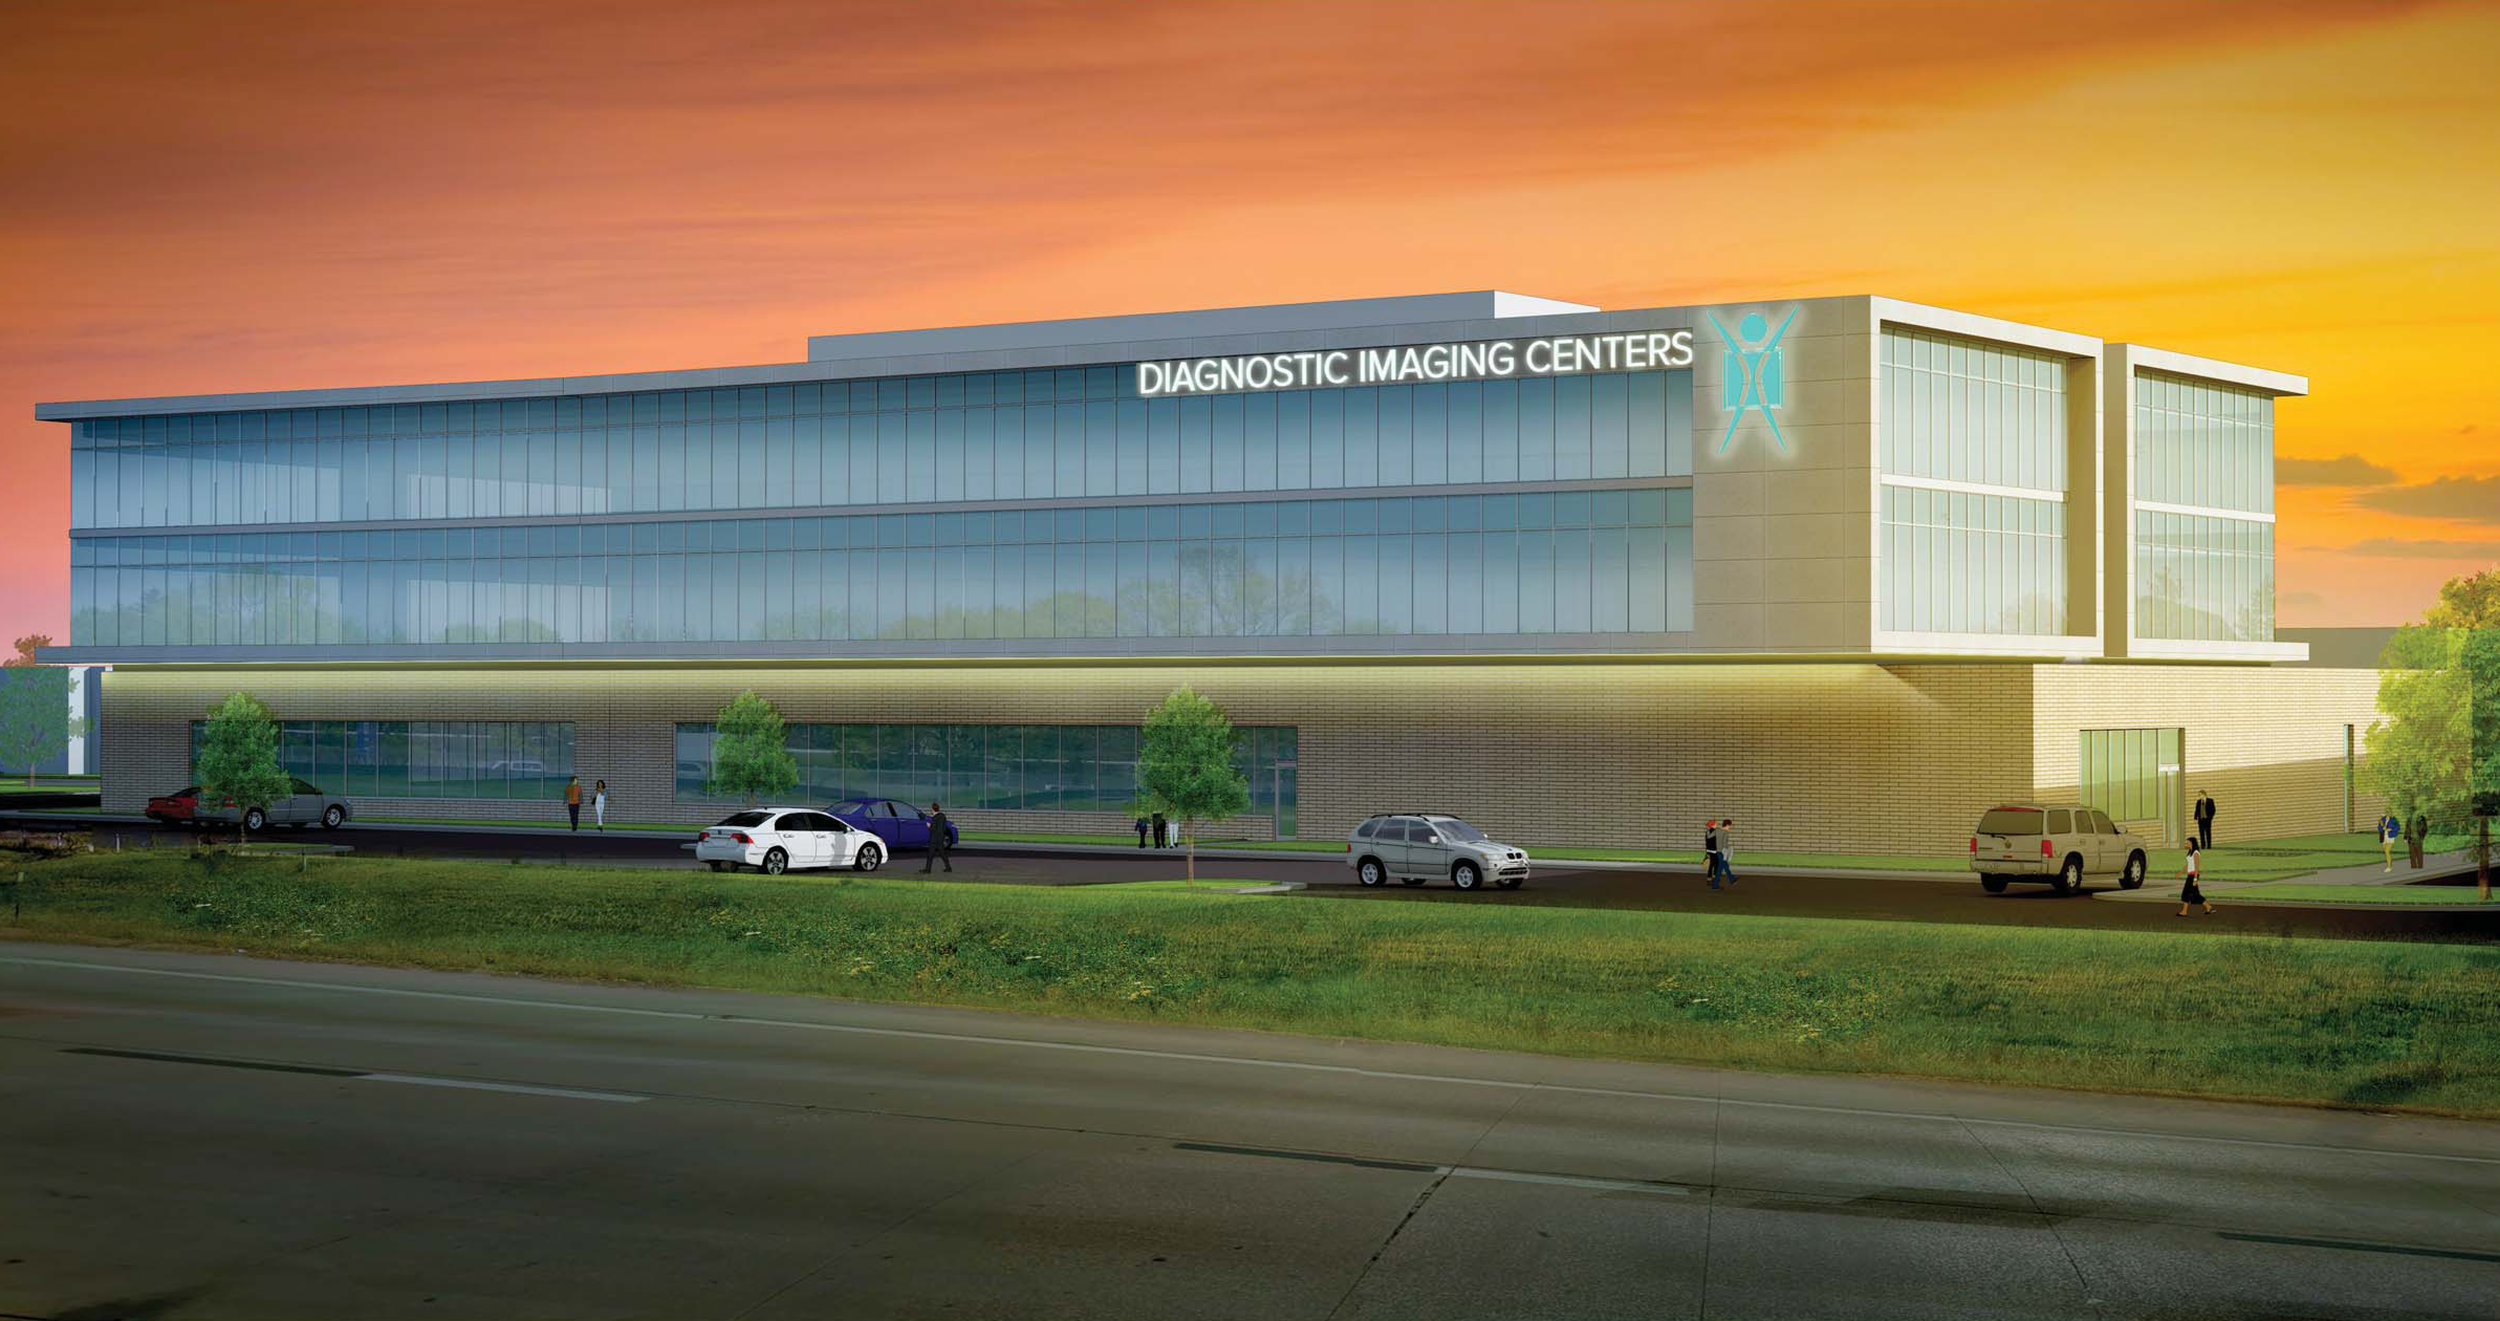 Diagnostic Imaging Centers will soon have a new corporate headquarters at 6650 West 110th Street in Overland Park, Kan.